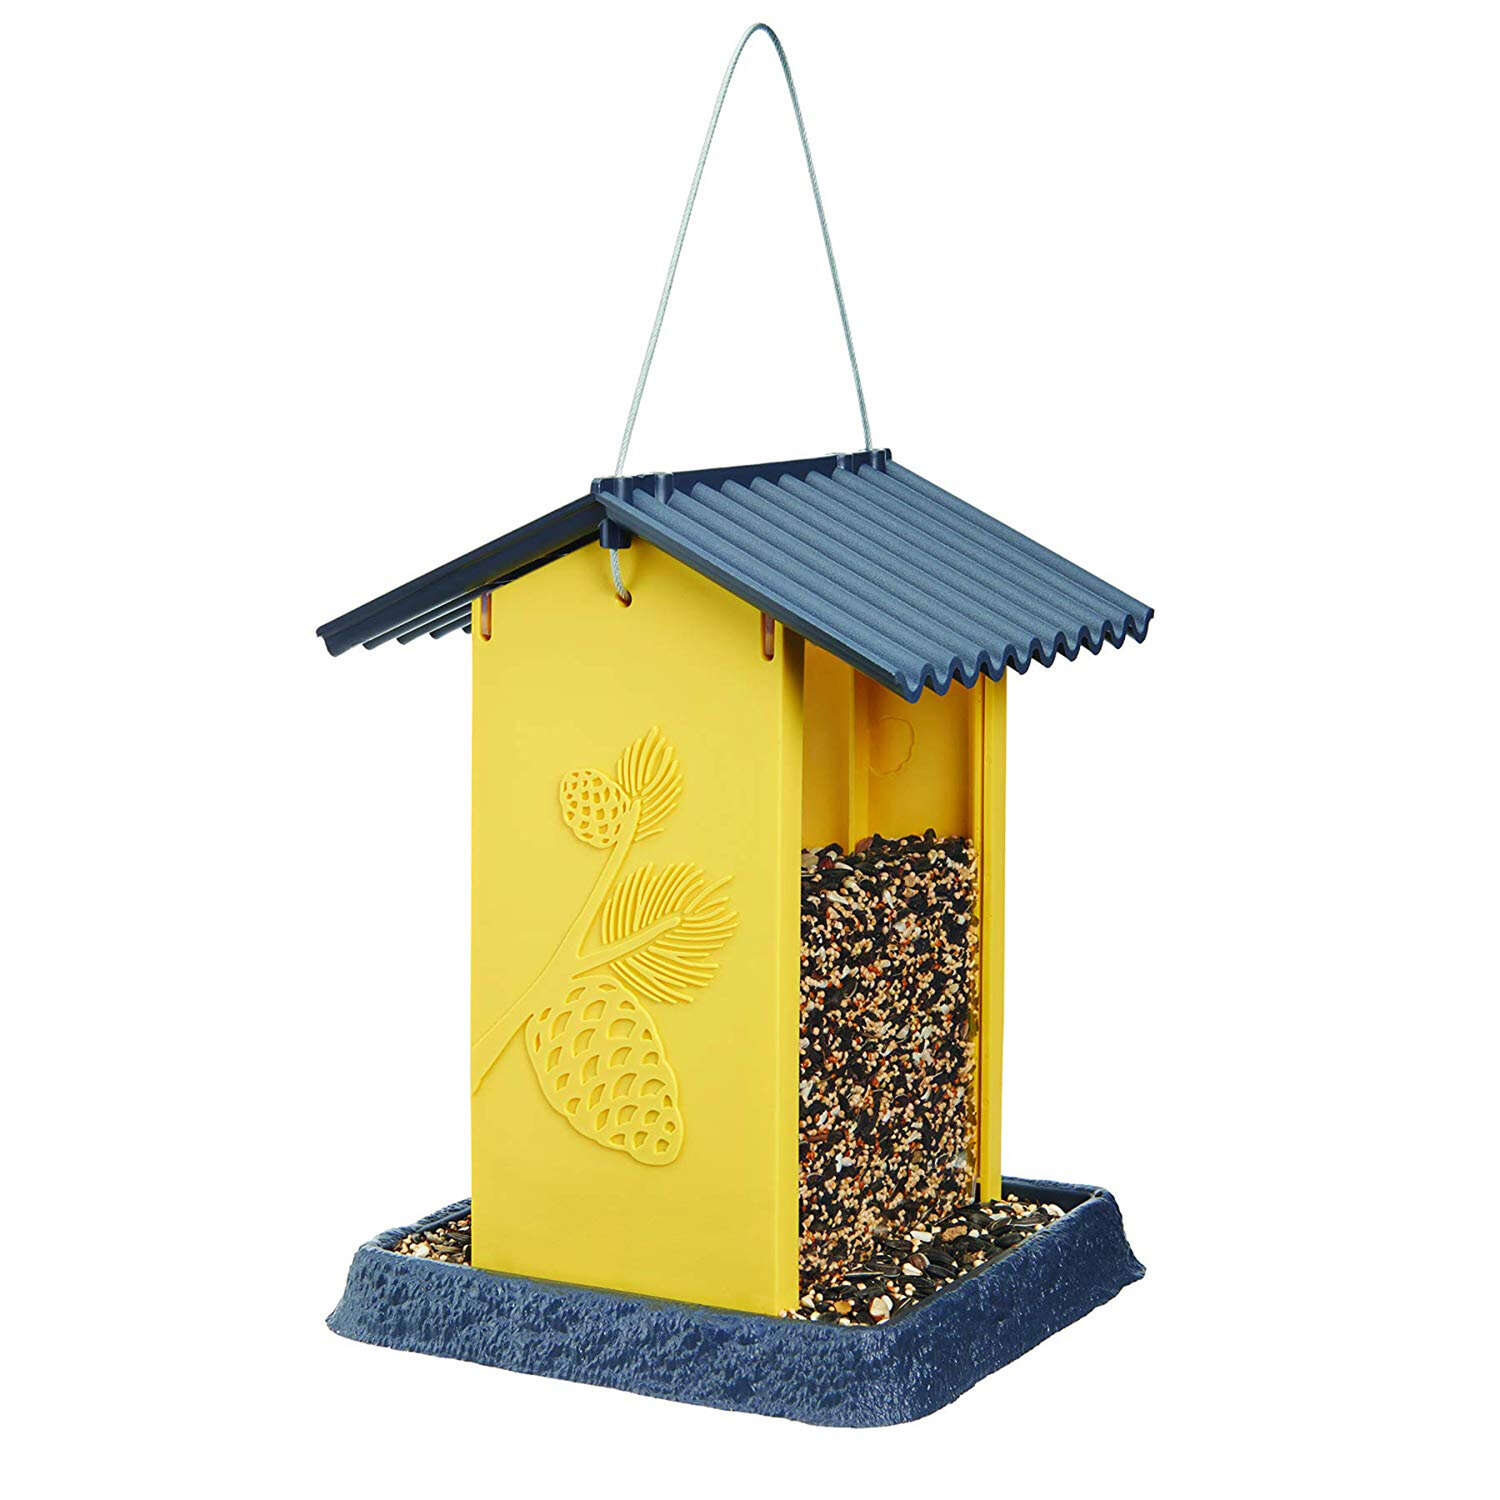 North States  Pinecone  Wild Bird  4.25 lb. Plastic  Hopper  Bird Feeder  4 ports